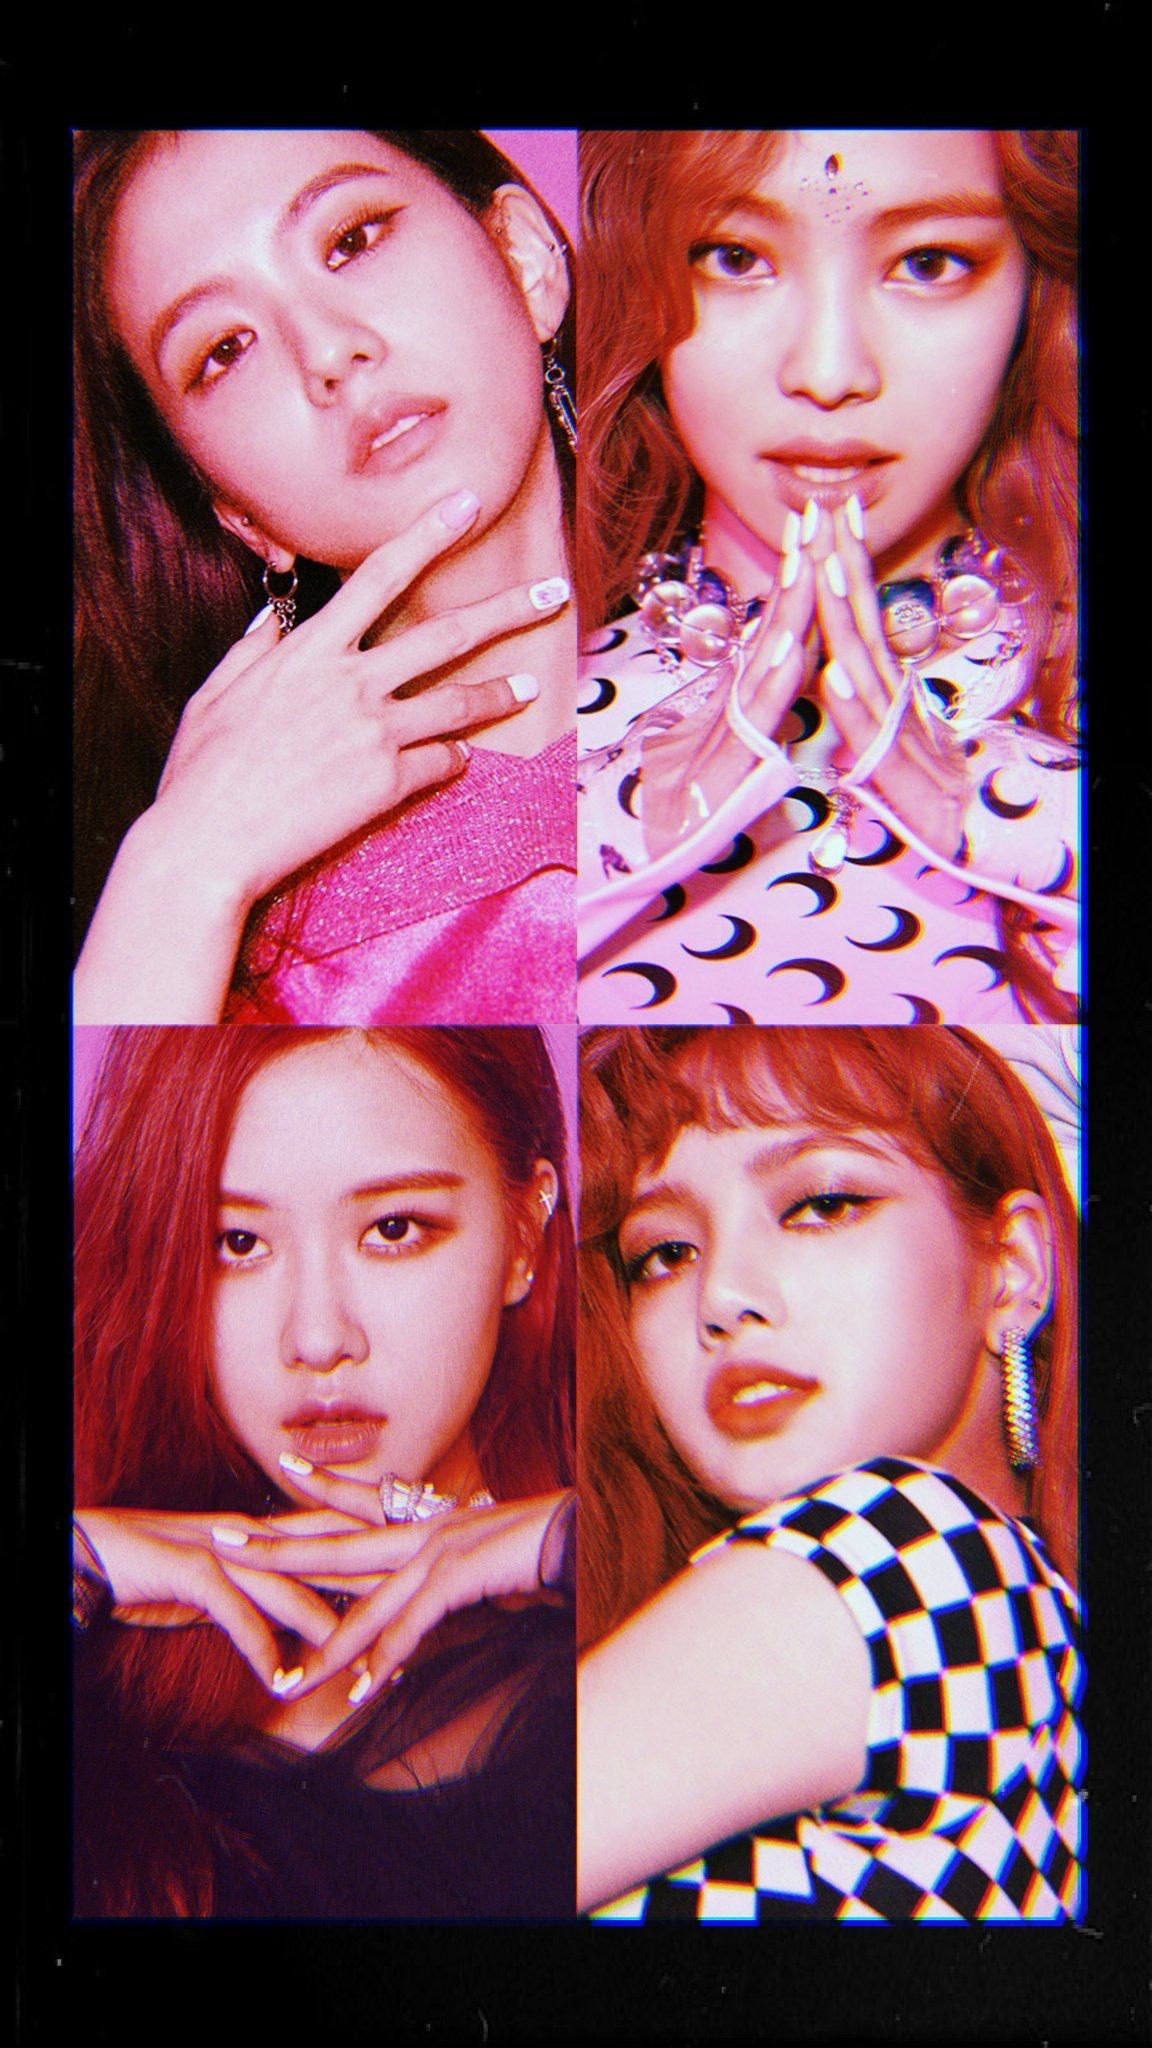 Download 6000+ Wallpaper Blackpink In Your Area HD